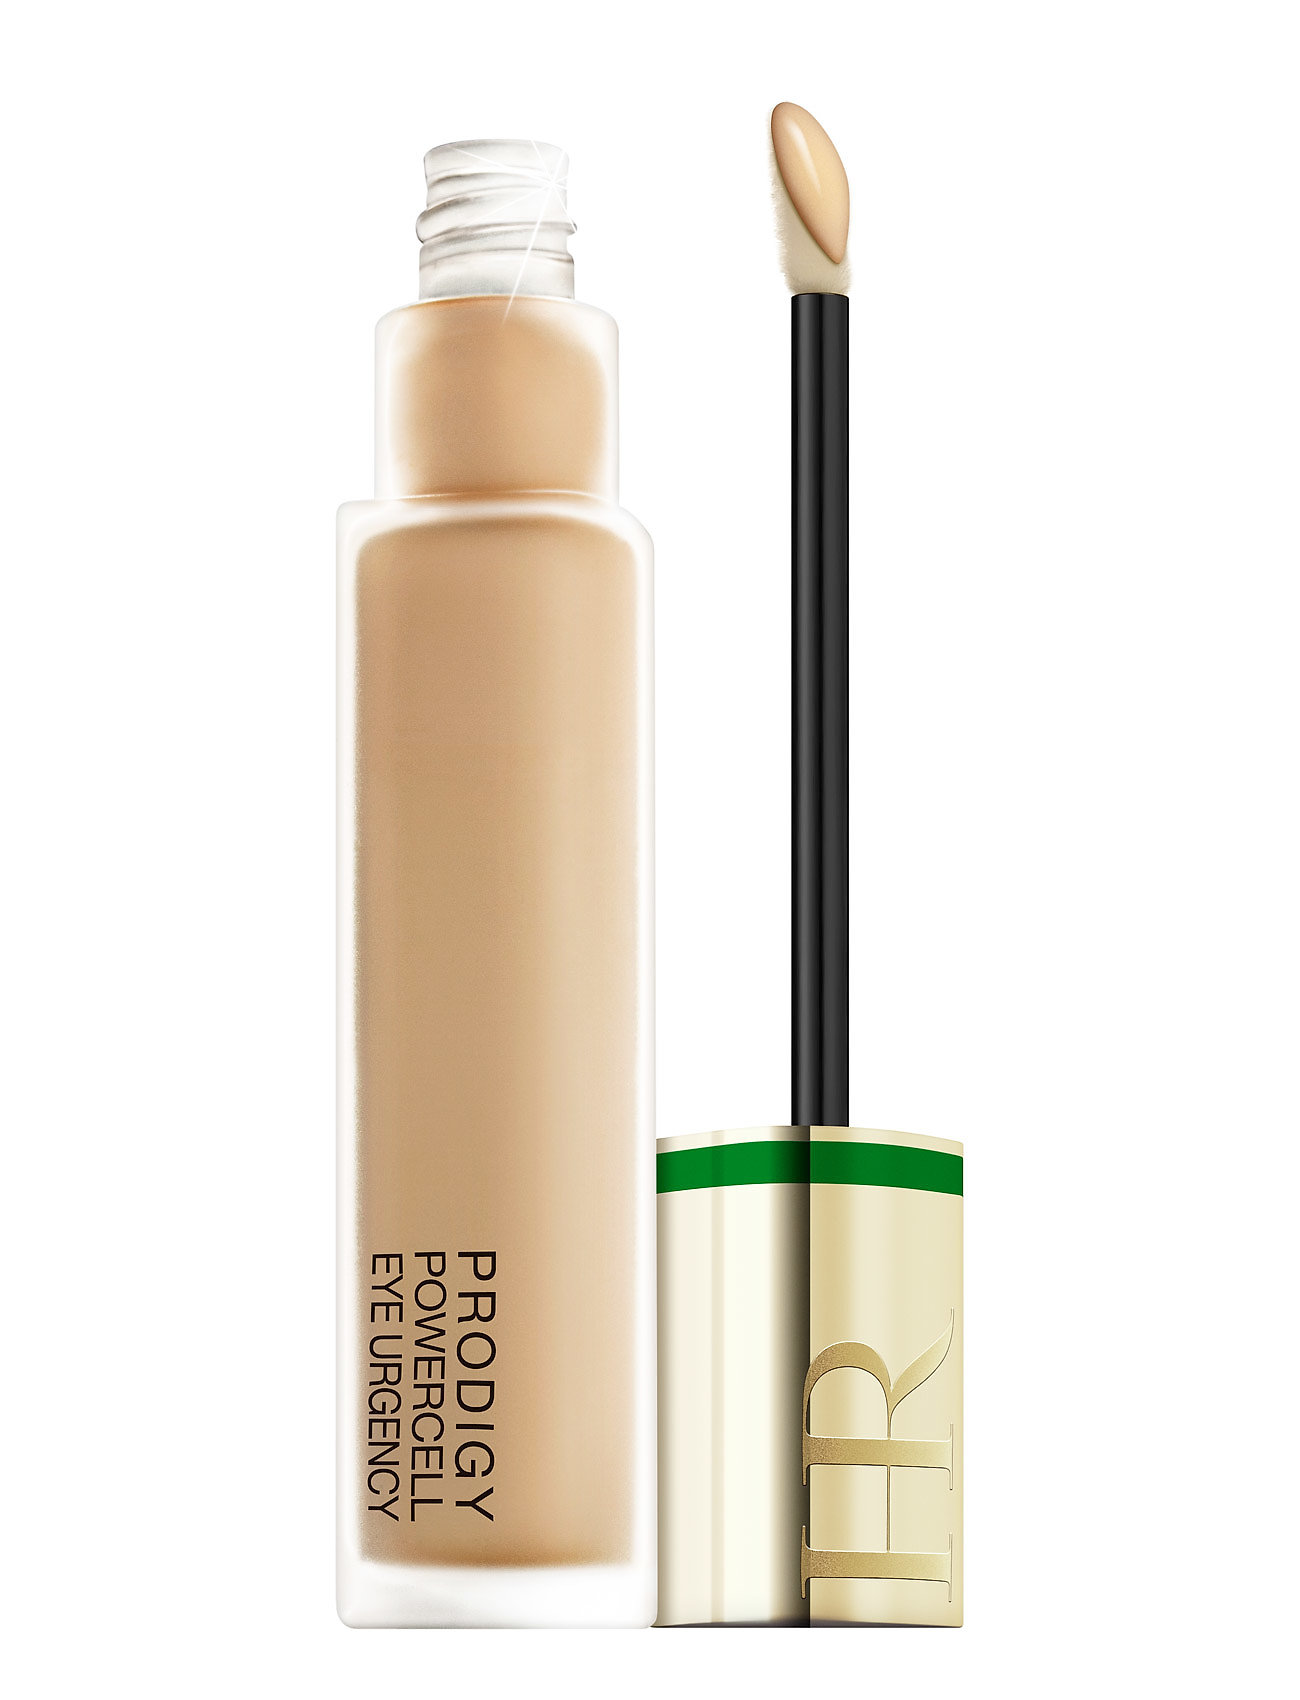 helena rubinstein – Powercell eye urgency concealer på boozt.com dk